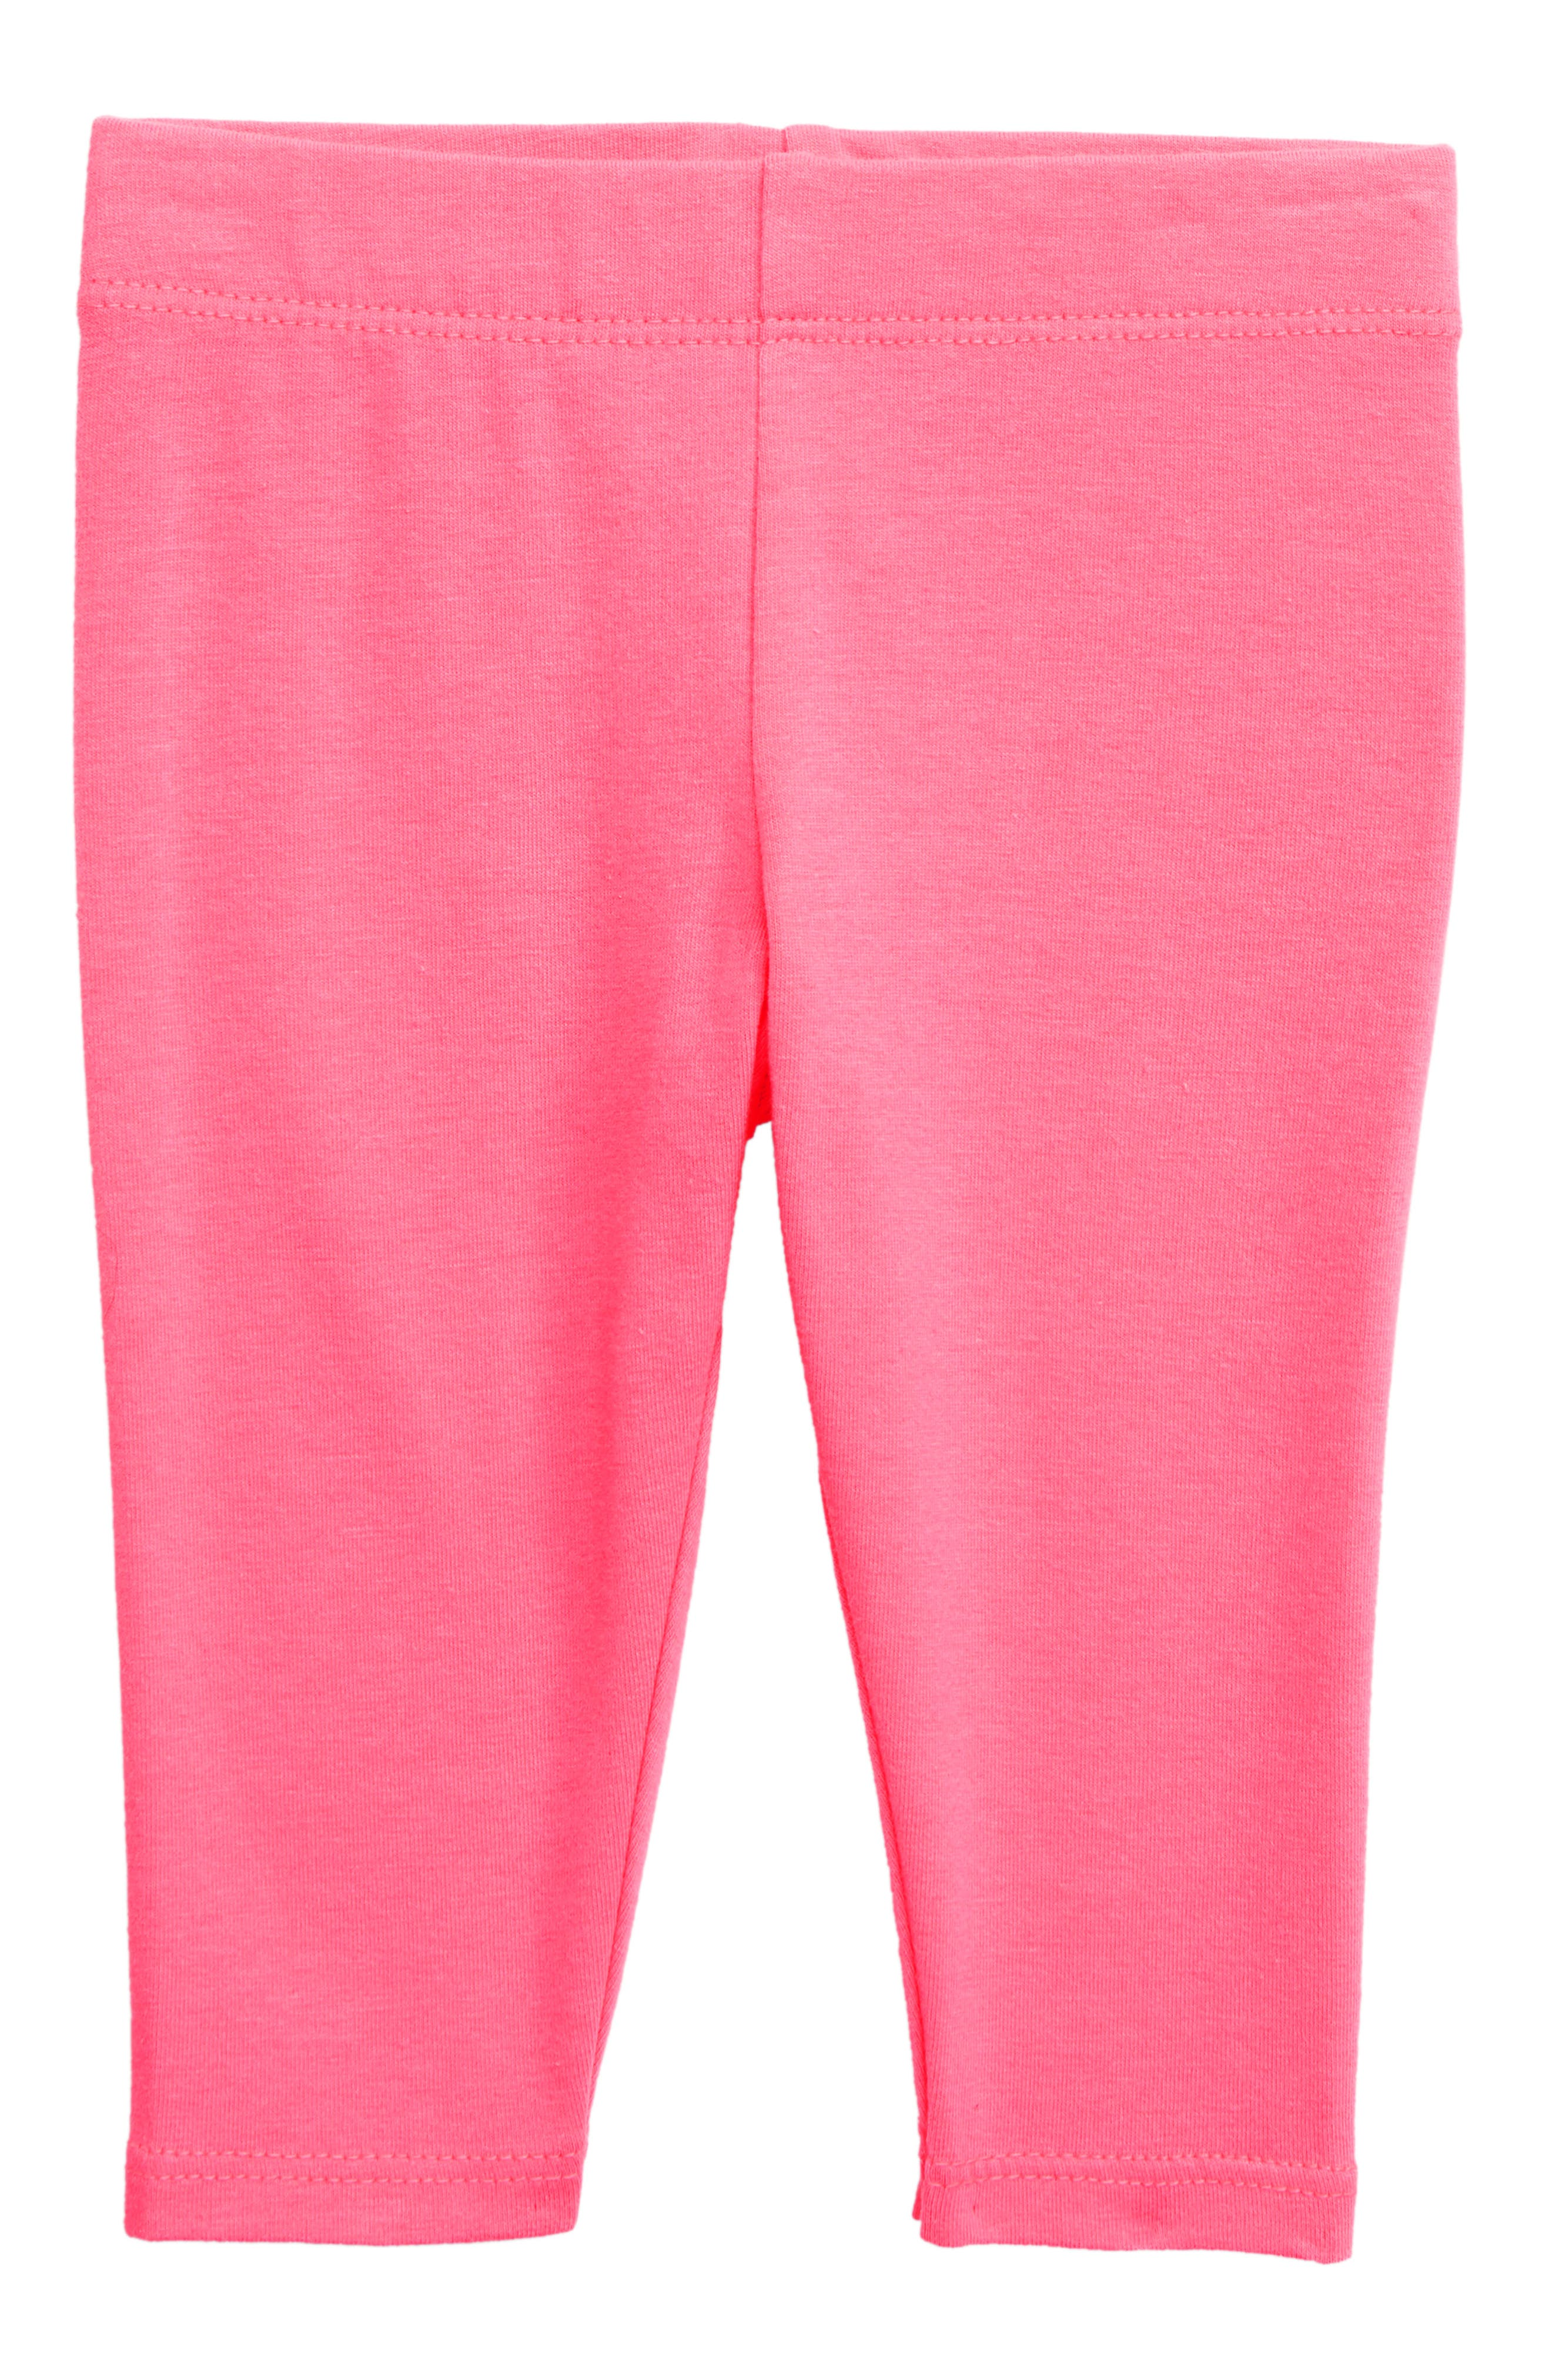 TUCKER + TATE, Essential Leggings, Main thumbnail 1, color, PINK KNOCKOUT